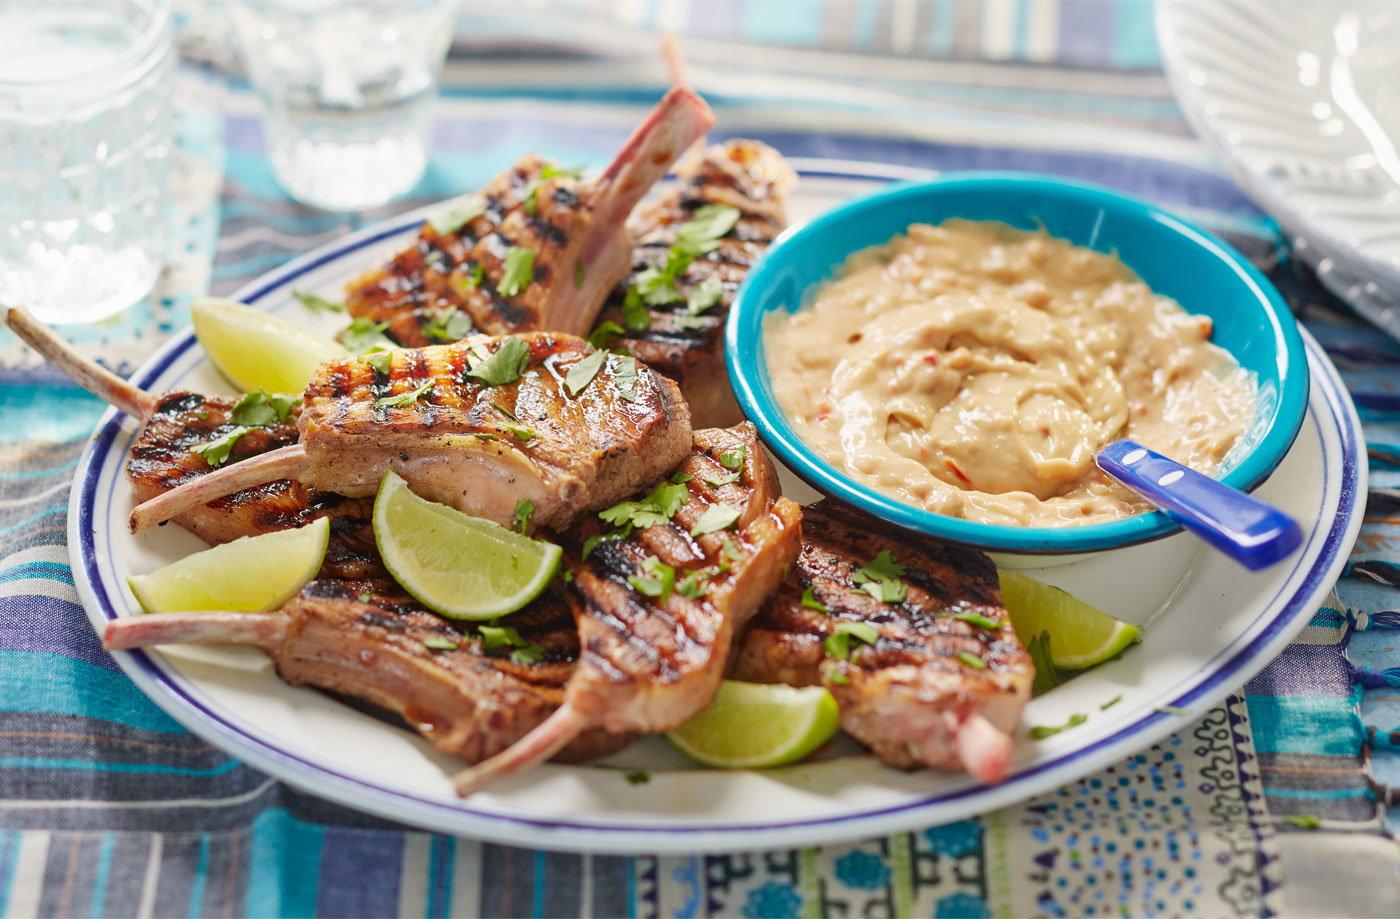 BBQ lamb chops with satay sauce